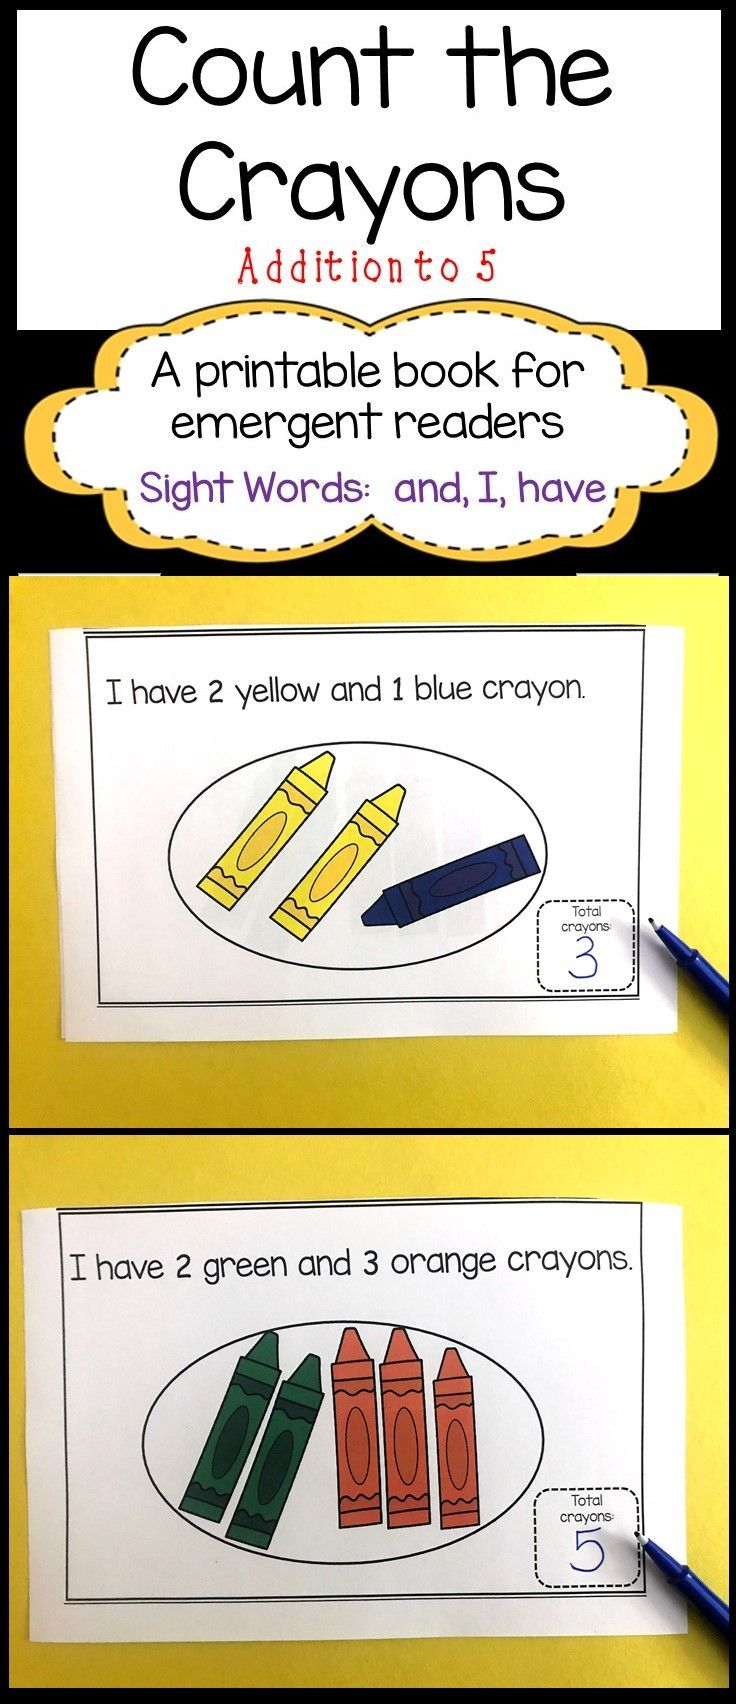 Count the Crayons   Addition to 5   Decodable Book   Math   Sight Word Reader   Interactive Book    Kindergarten   First Grade Back to School